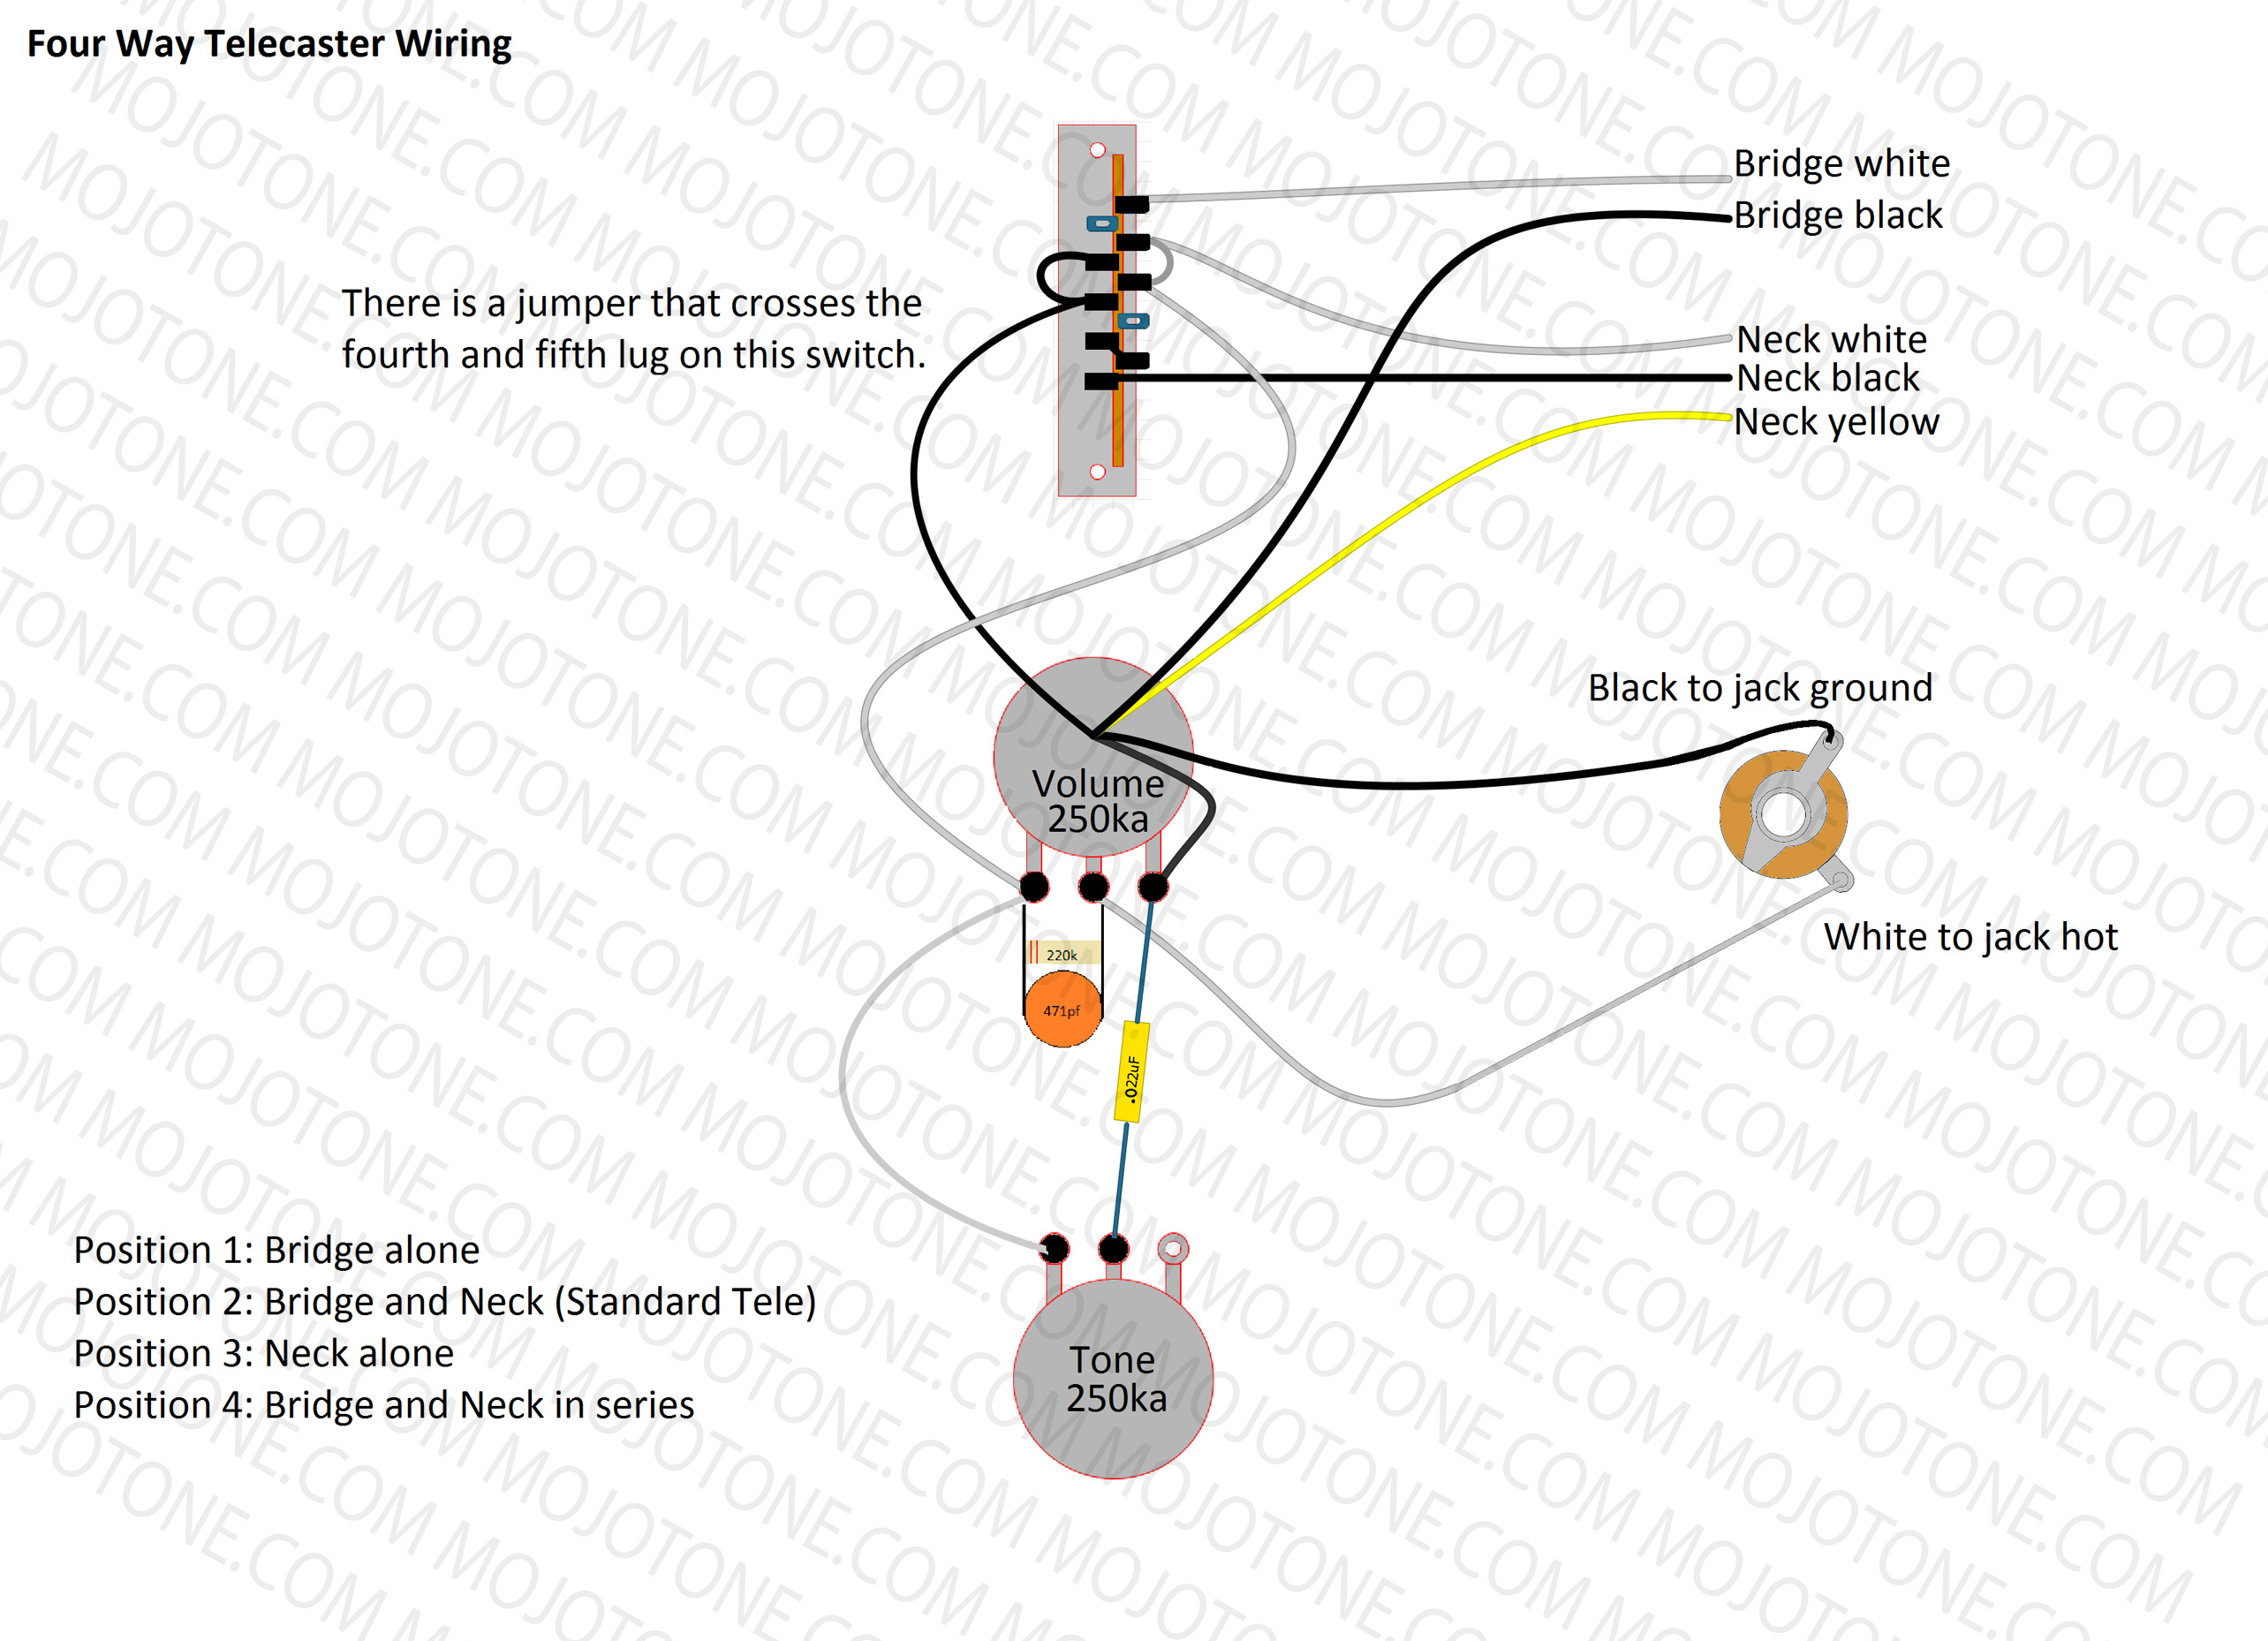 Astounding Telecaster Four Way Wiring Diagram Wiring Cloud Overrenstrafr09Org